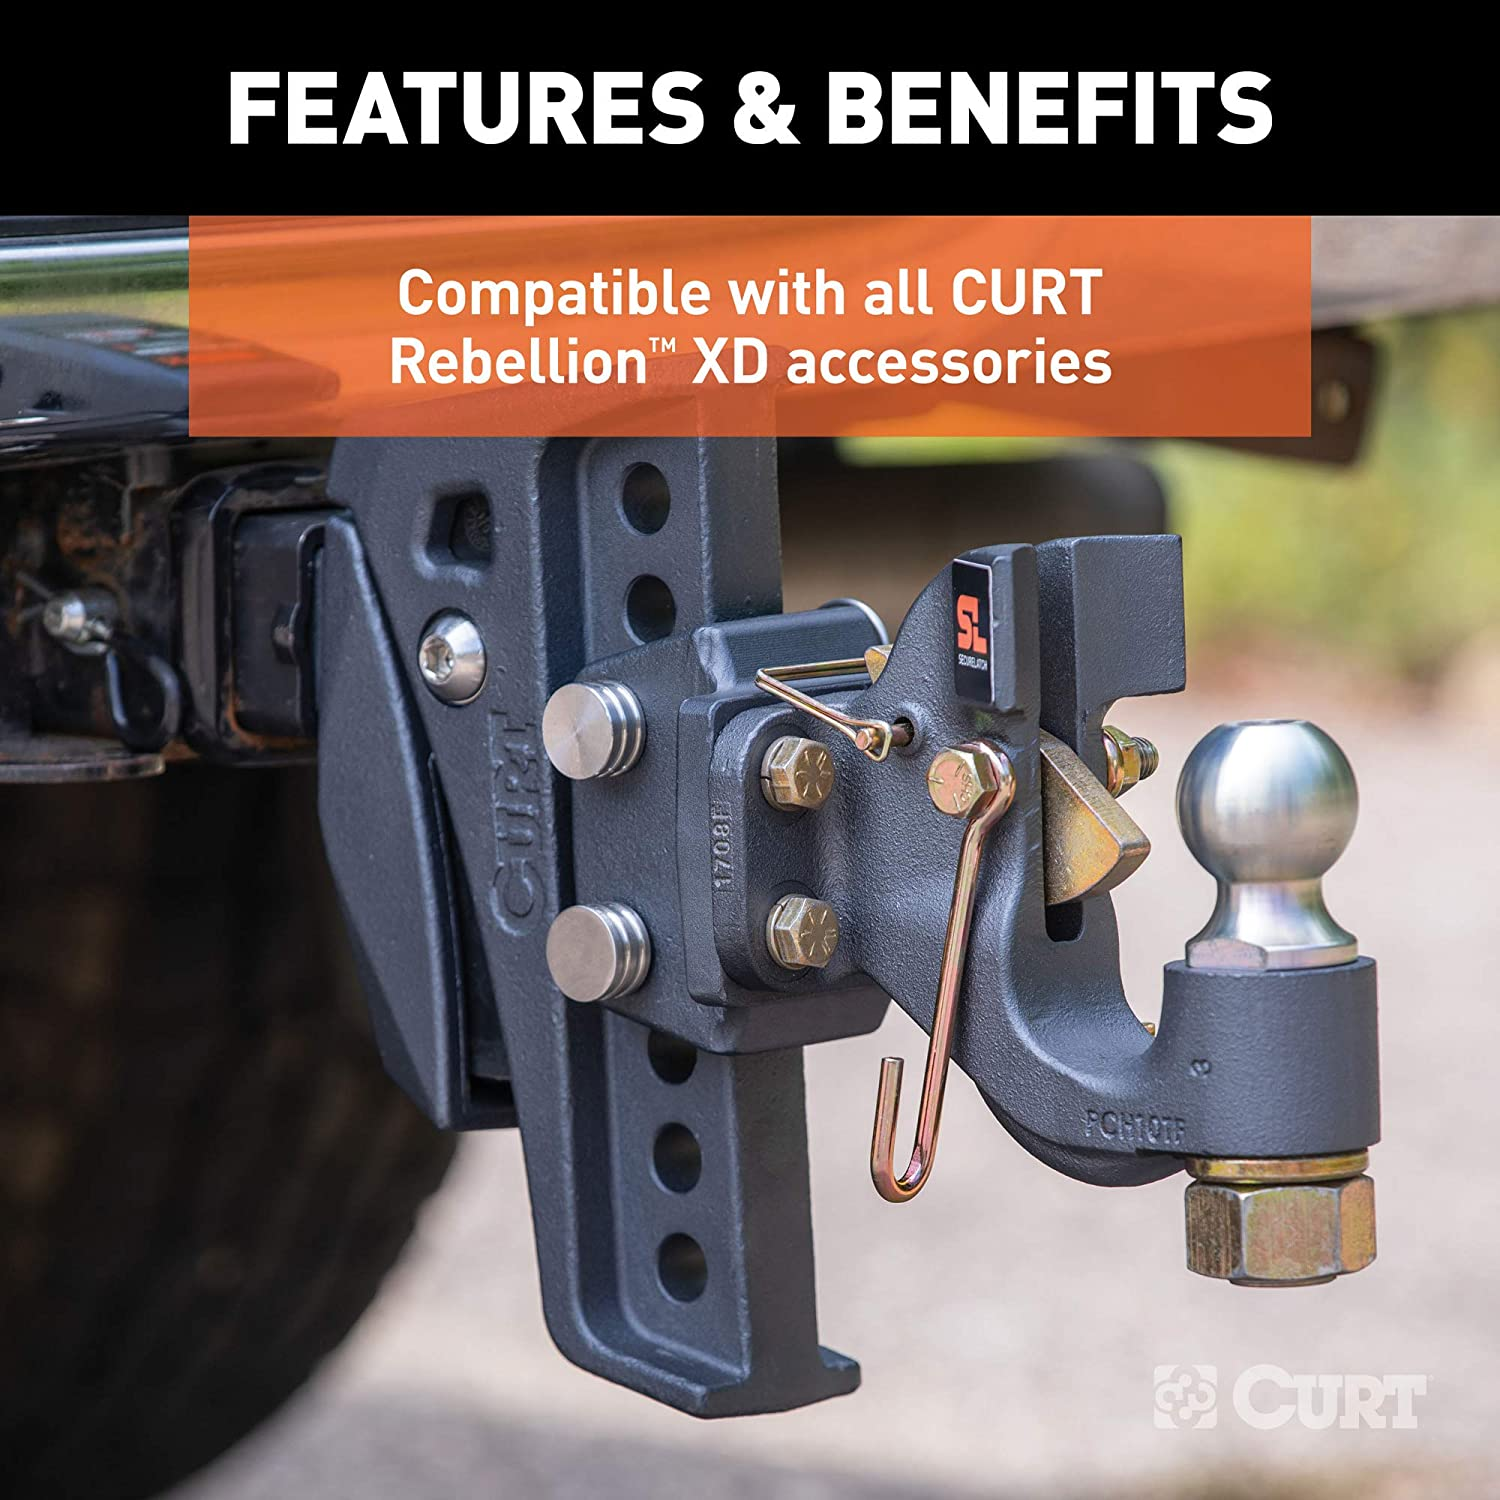 CURT 45959 Replacement Rebellion XD Accessory Mount Pins